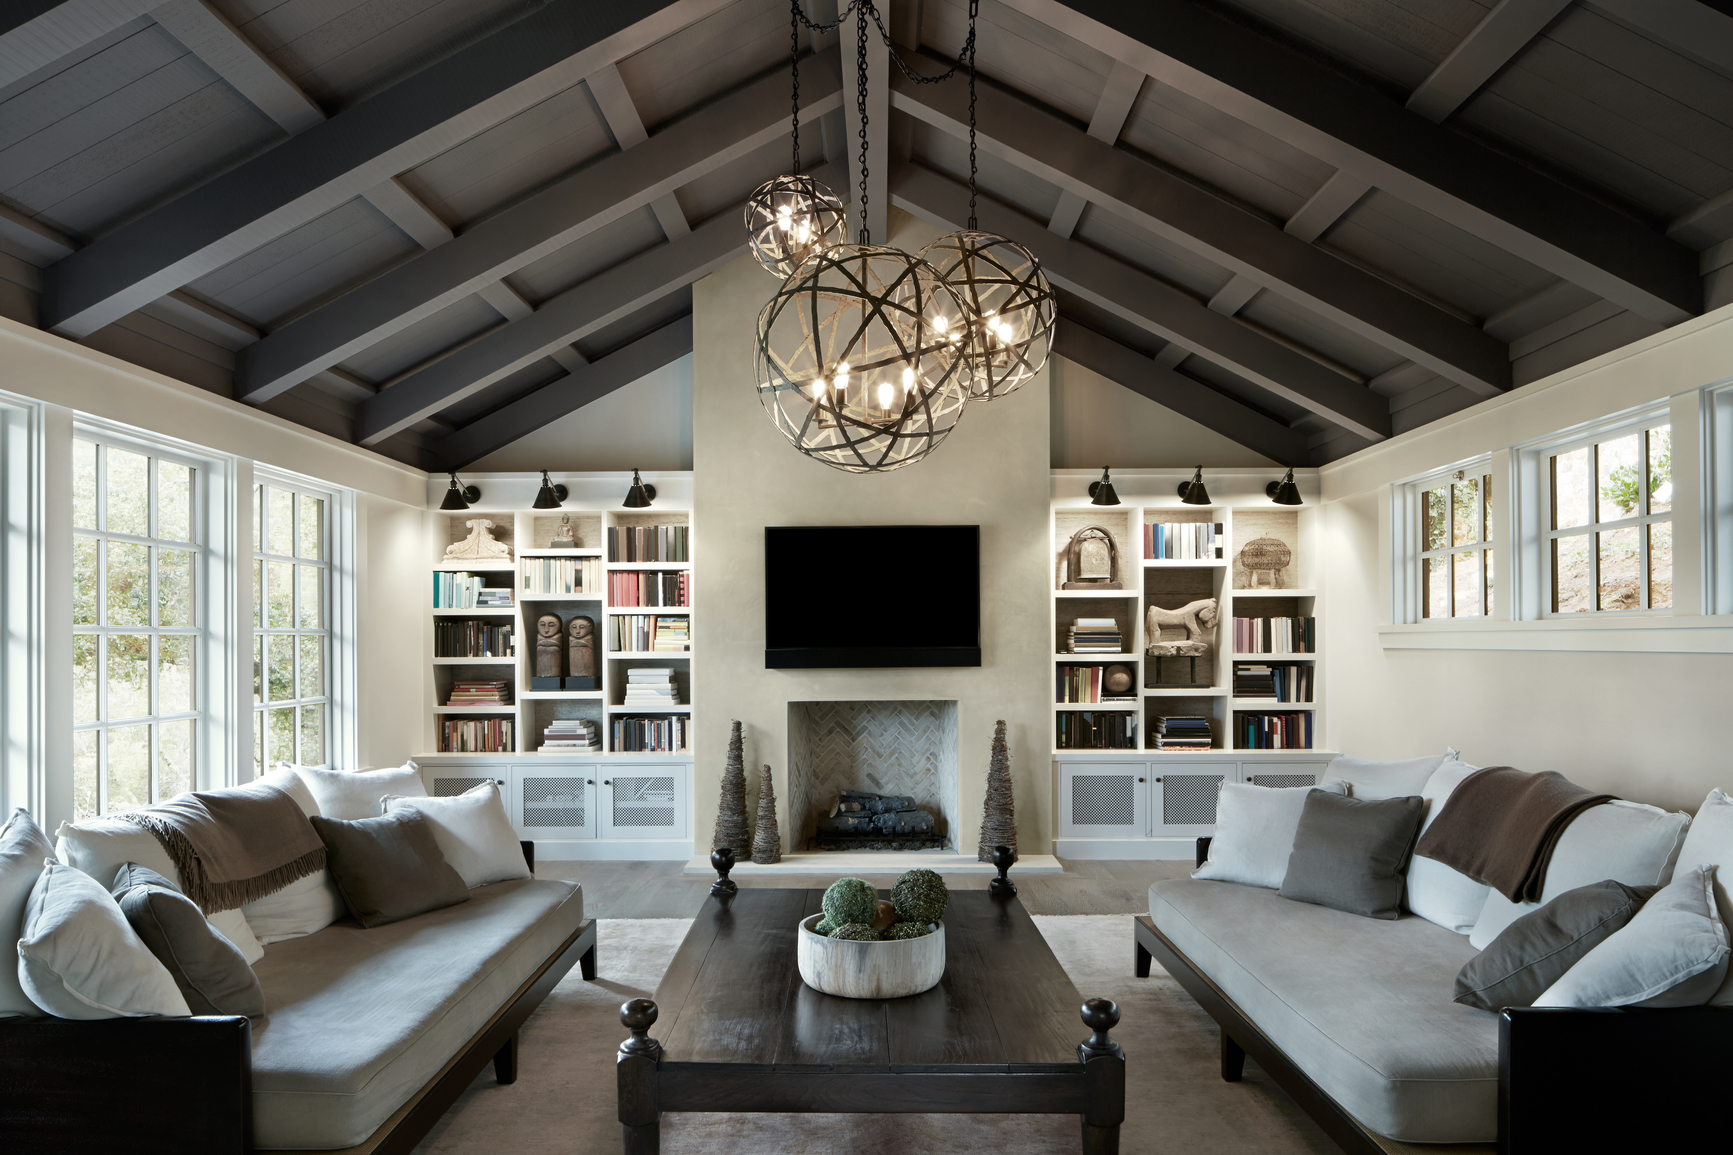 A living room design with two sofas, a coffee table and built-in bookcases flanking the fireplace. An open ceiling and oversized chandeliers showcase the natural beauty of this home.